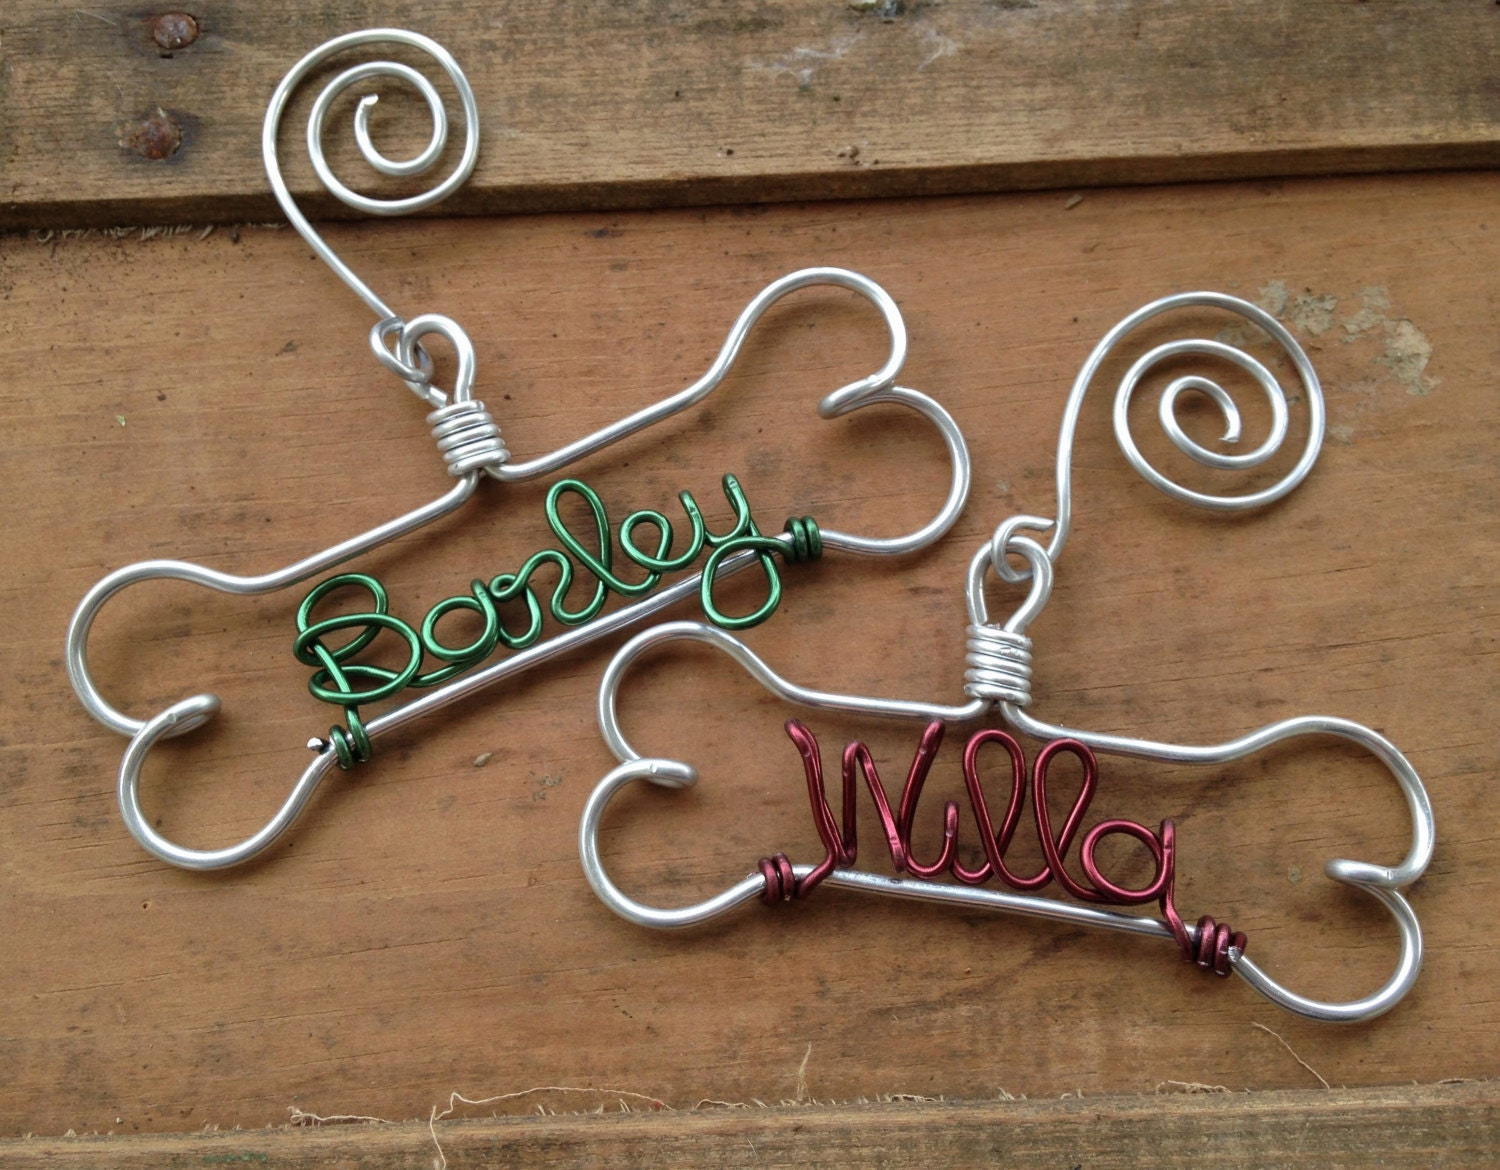 Personalized pet ornament - Personalized Pet Ornament Handcrafted Wire Dog Bone With Pet S Name Dog Christmas Gift